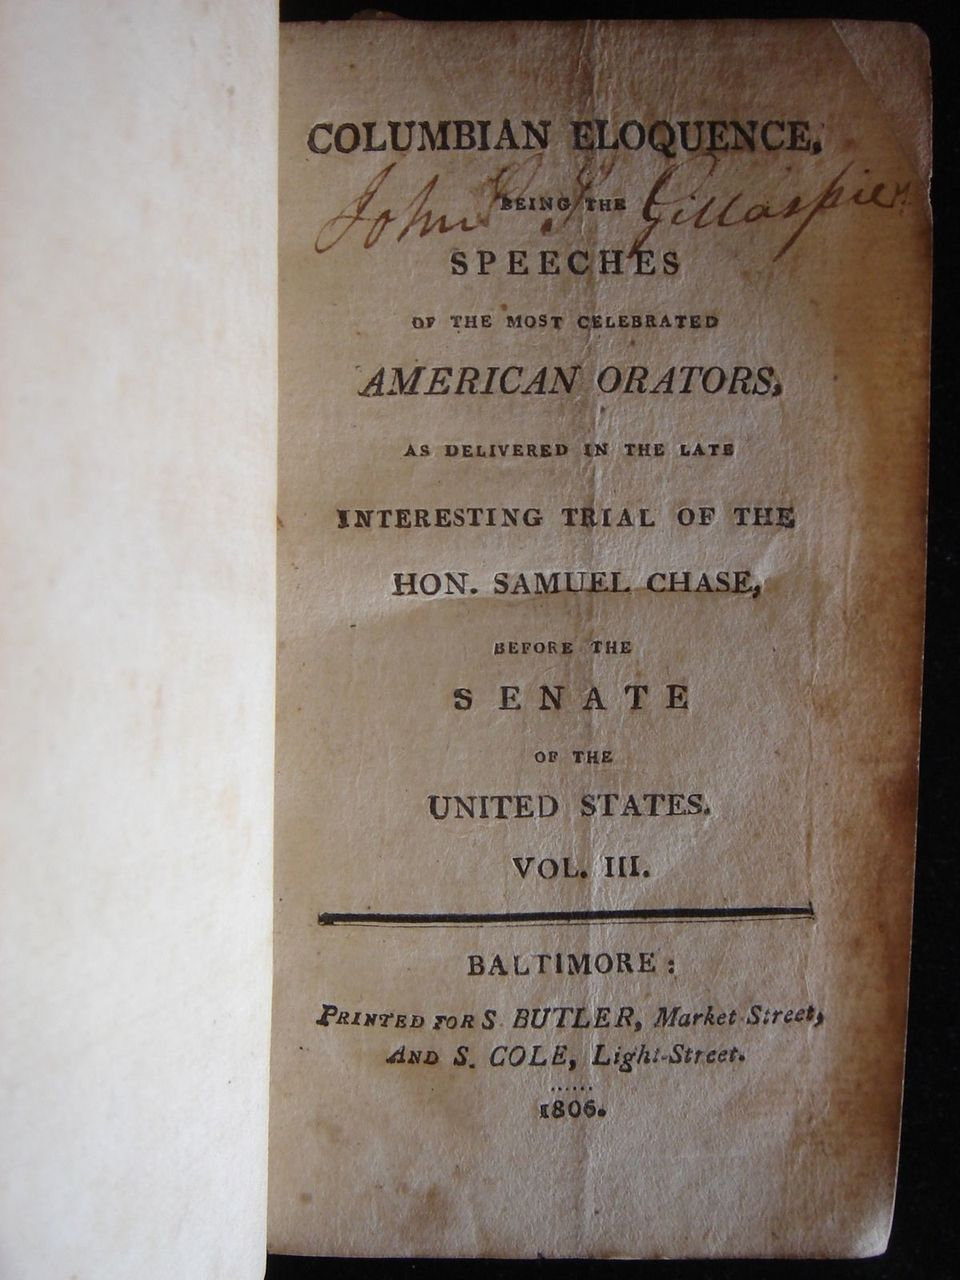 COLUMBIAN ELOQUENCE, Being the Speeches of the Most Celebrated American Orators...Trial of Samuel Chase...- 1806 [Vol 3]